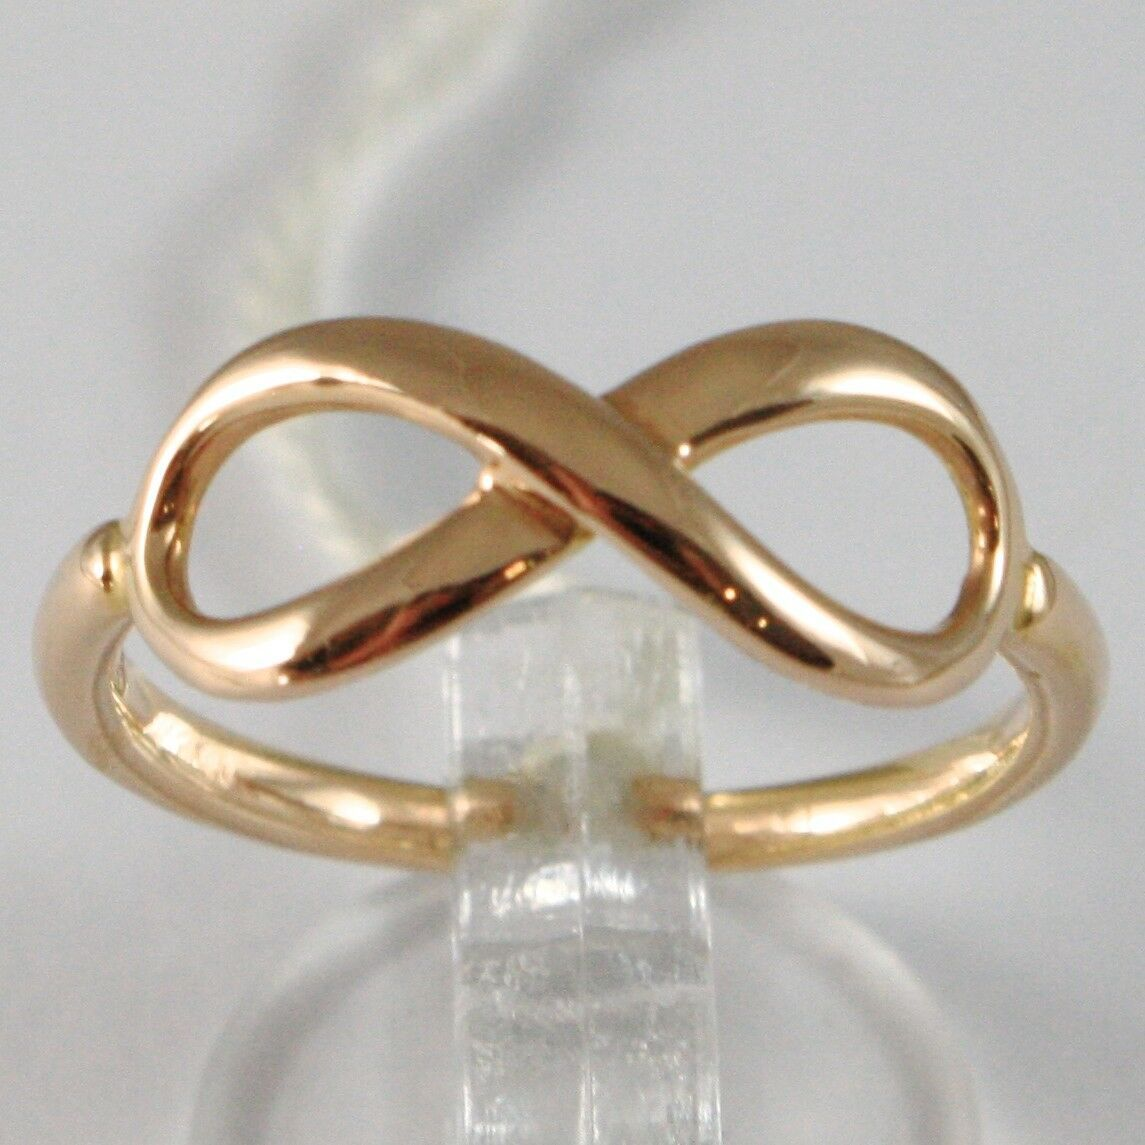 Pink gold Ring 750 18k, Infinity Symbol, Made in Italy